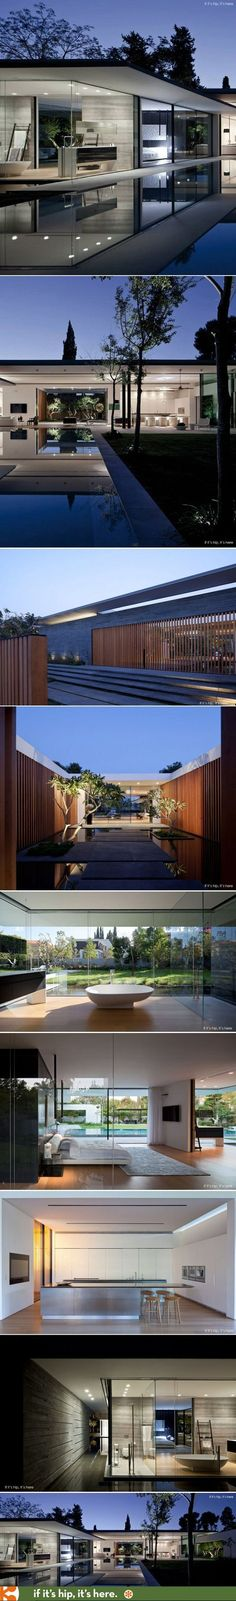 Minimal and modern the houses characteristic style is defined by the planar surfaces. #architecture #modern